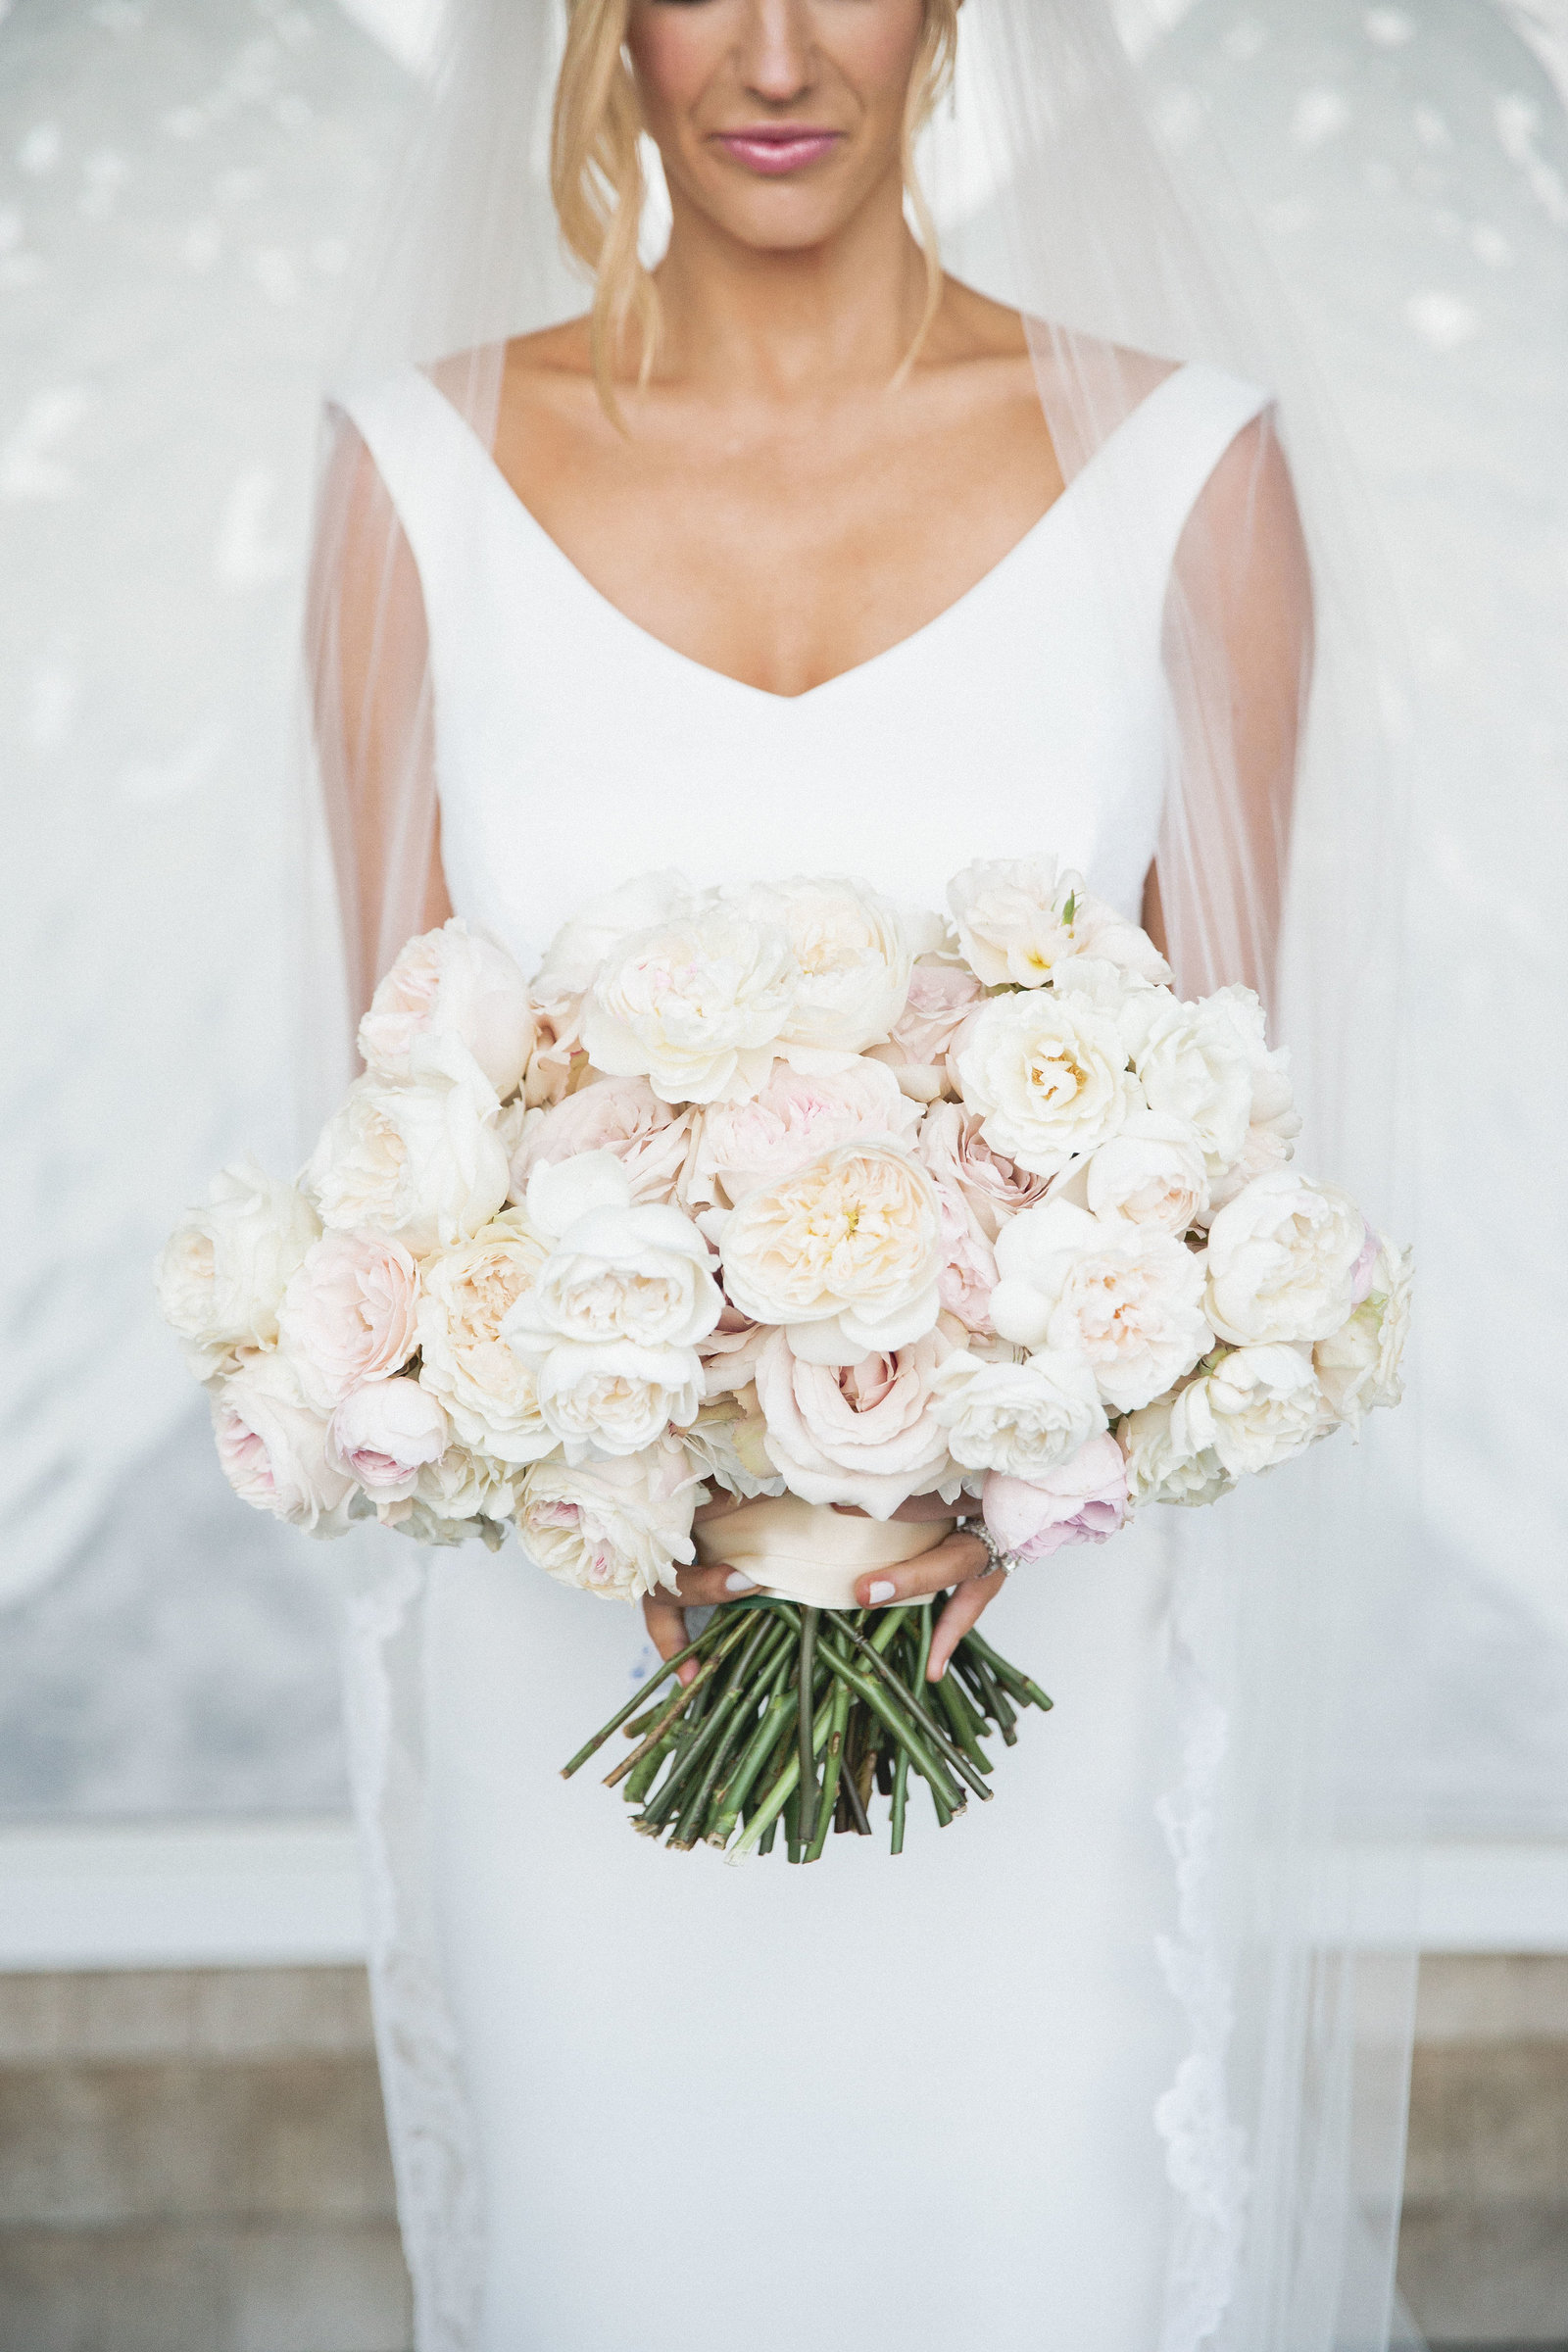 Garden Rose bouquet from The Bachelor's Whitney Bischoff's wedding planned by Best of Boston wedding event planner Always Yours Events